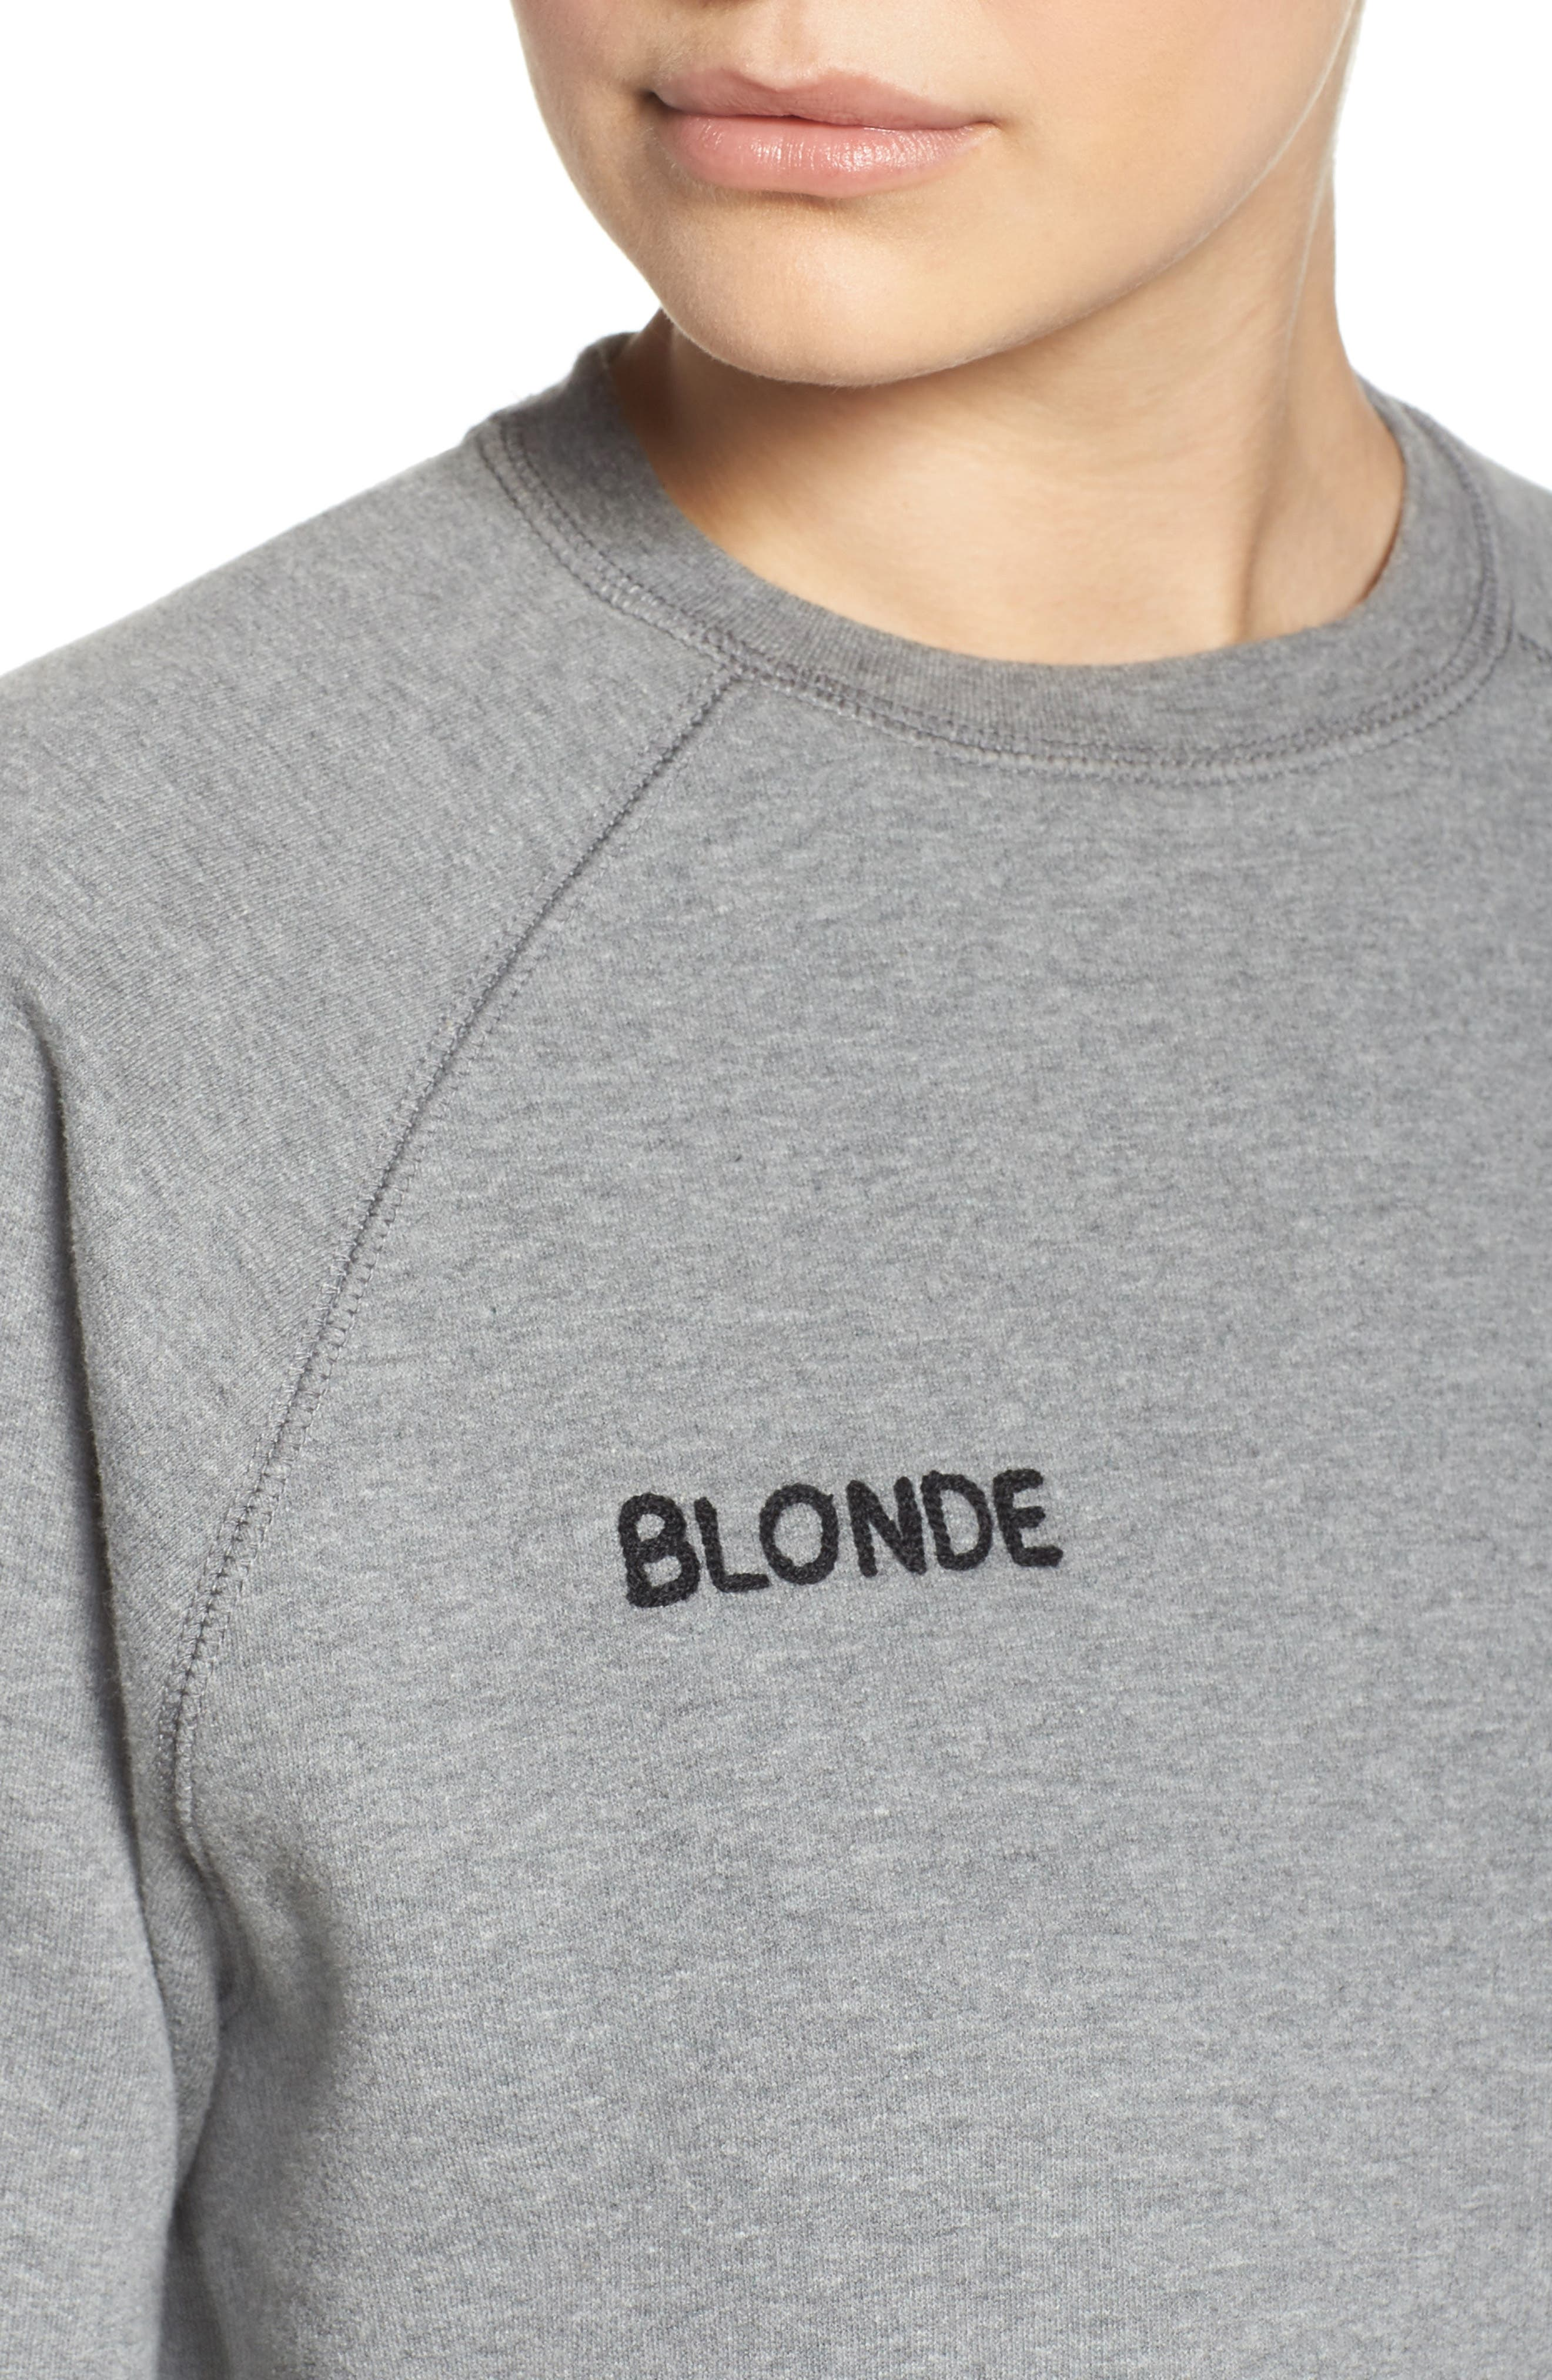 Blonde Crewneck Sweatshirt,                             Alternate thumbnail 4, color,                             030